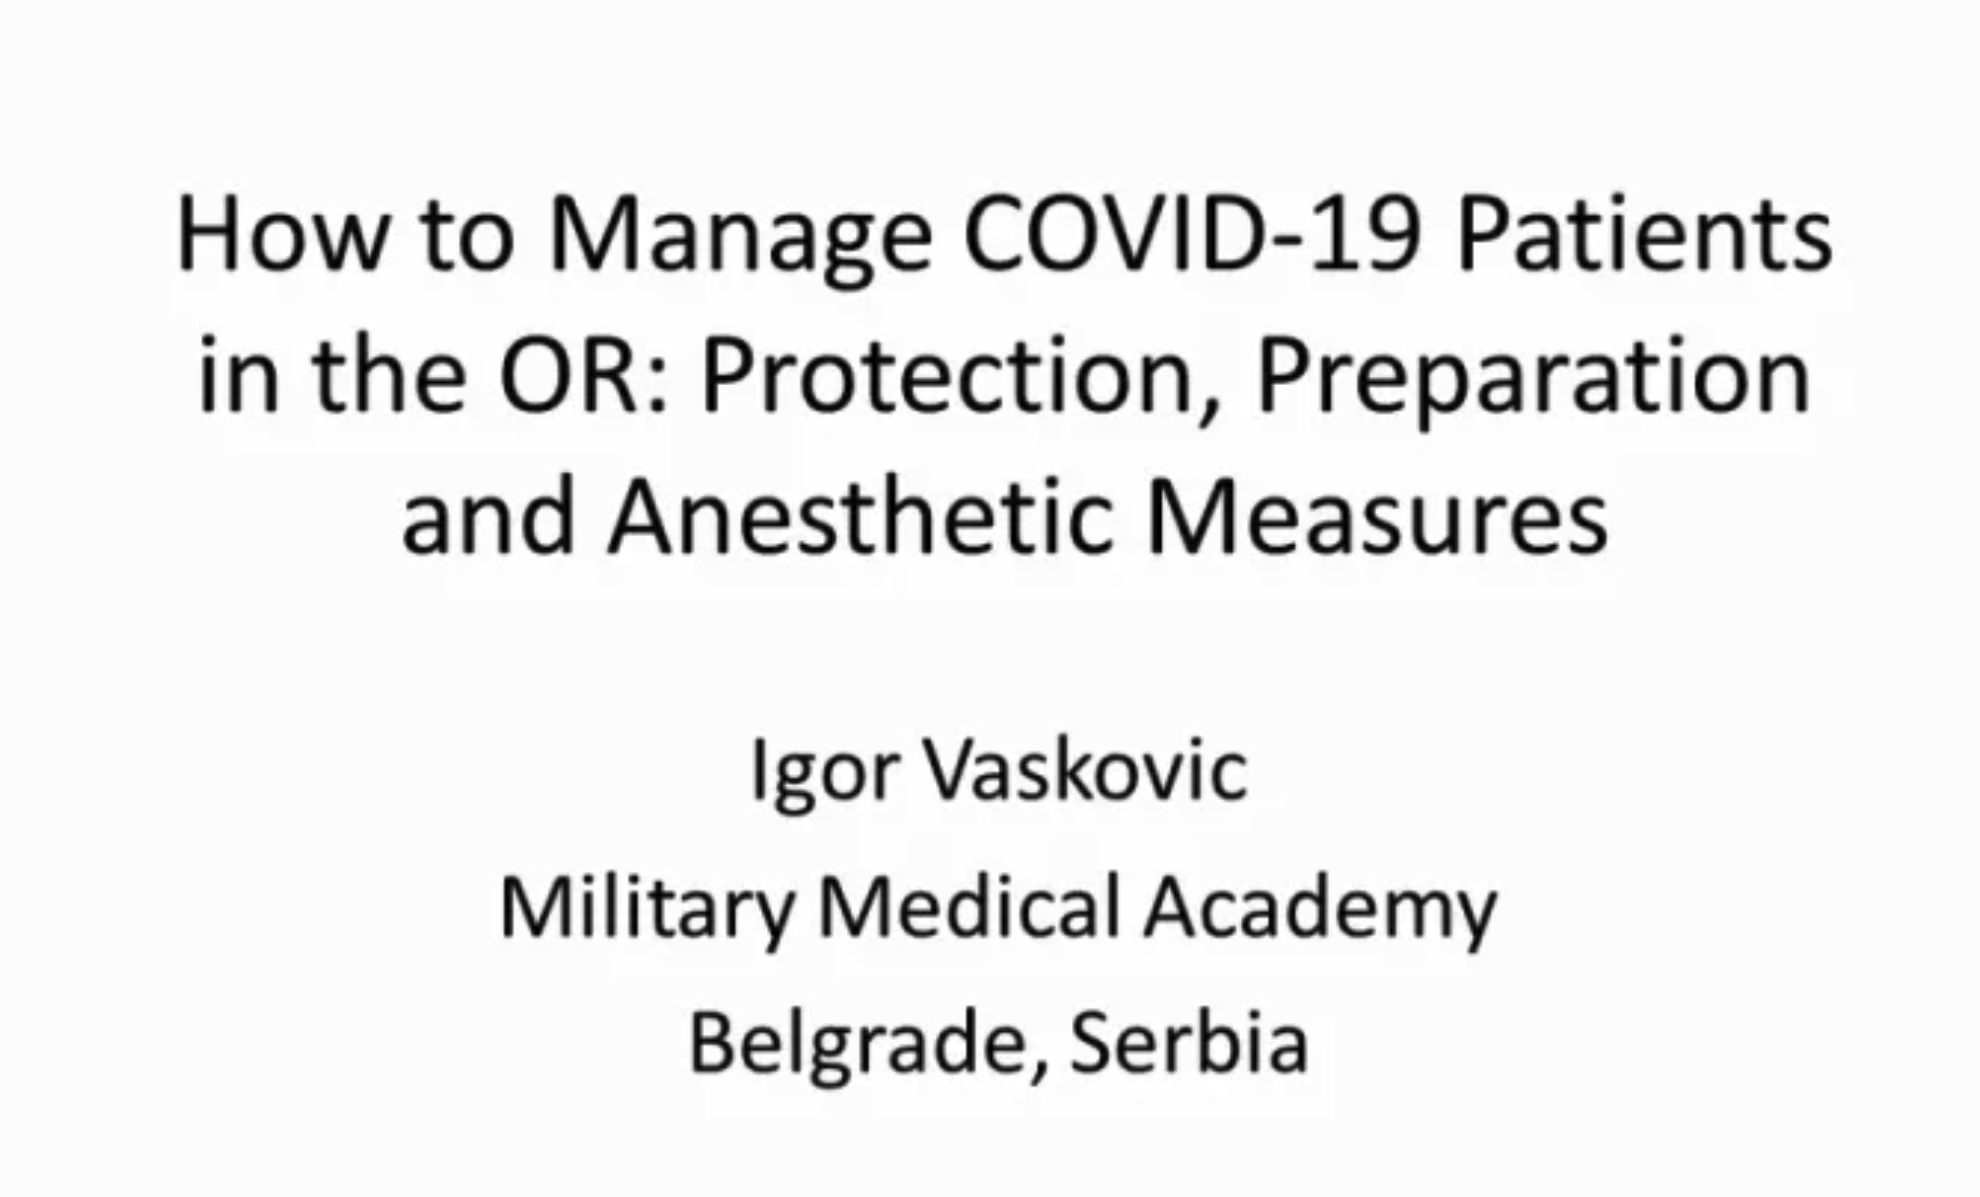 How to manage COVID-19 patients in the OR